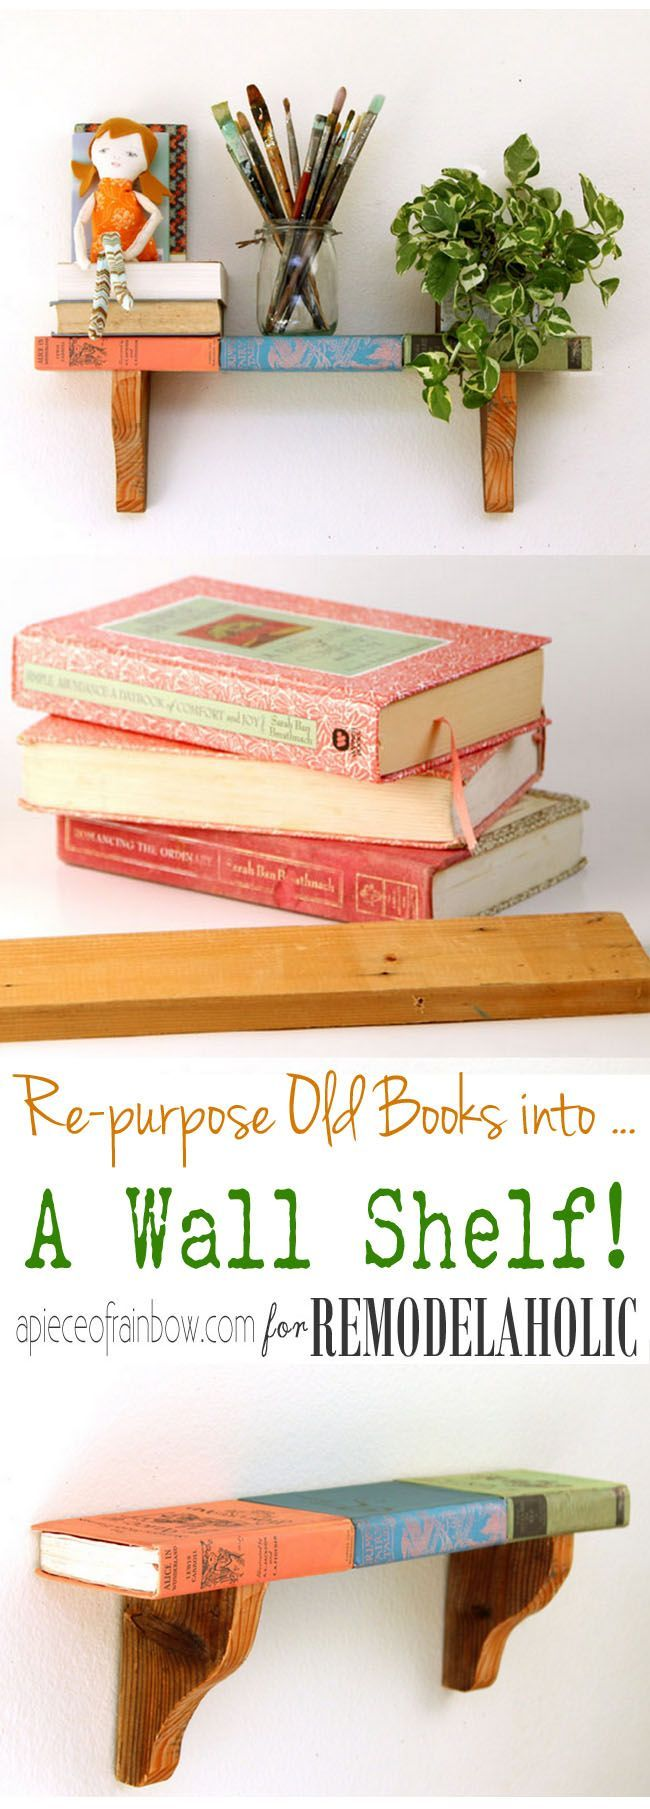 Brilliant idea to repurpose old books! Make them into an easy